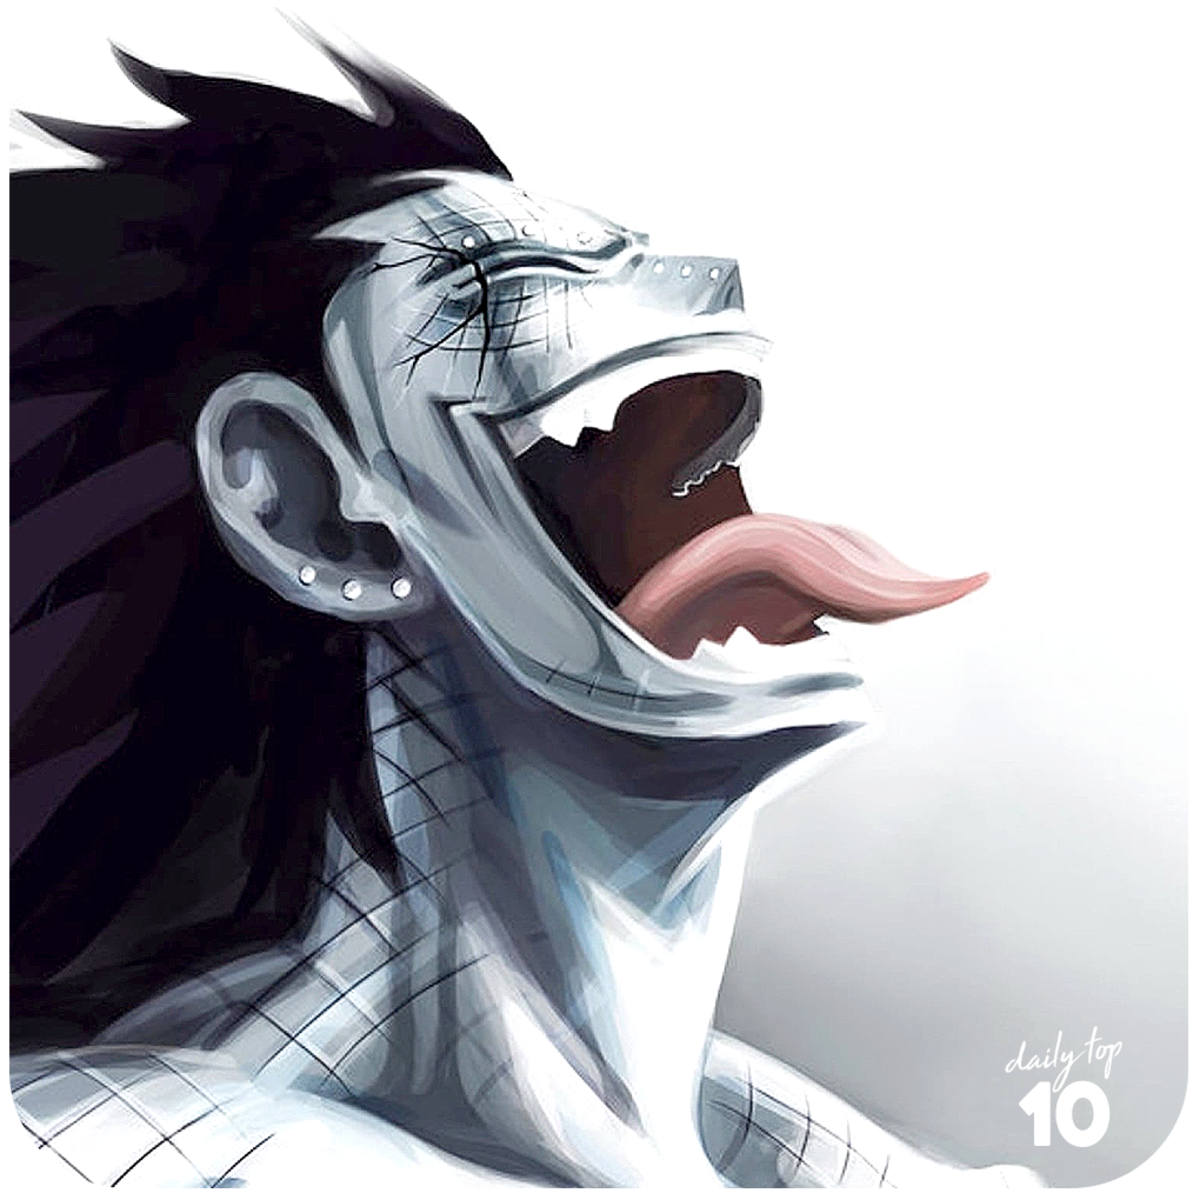 Gajeel Redfox tongue out.